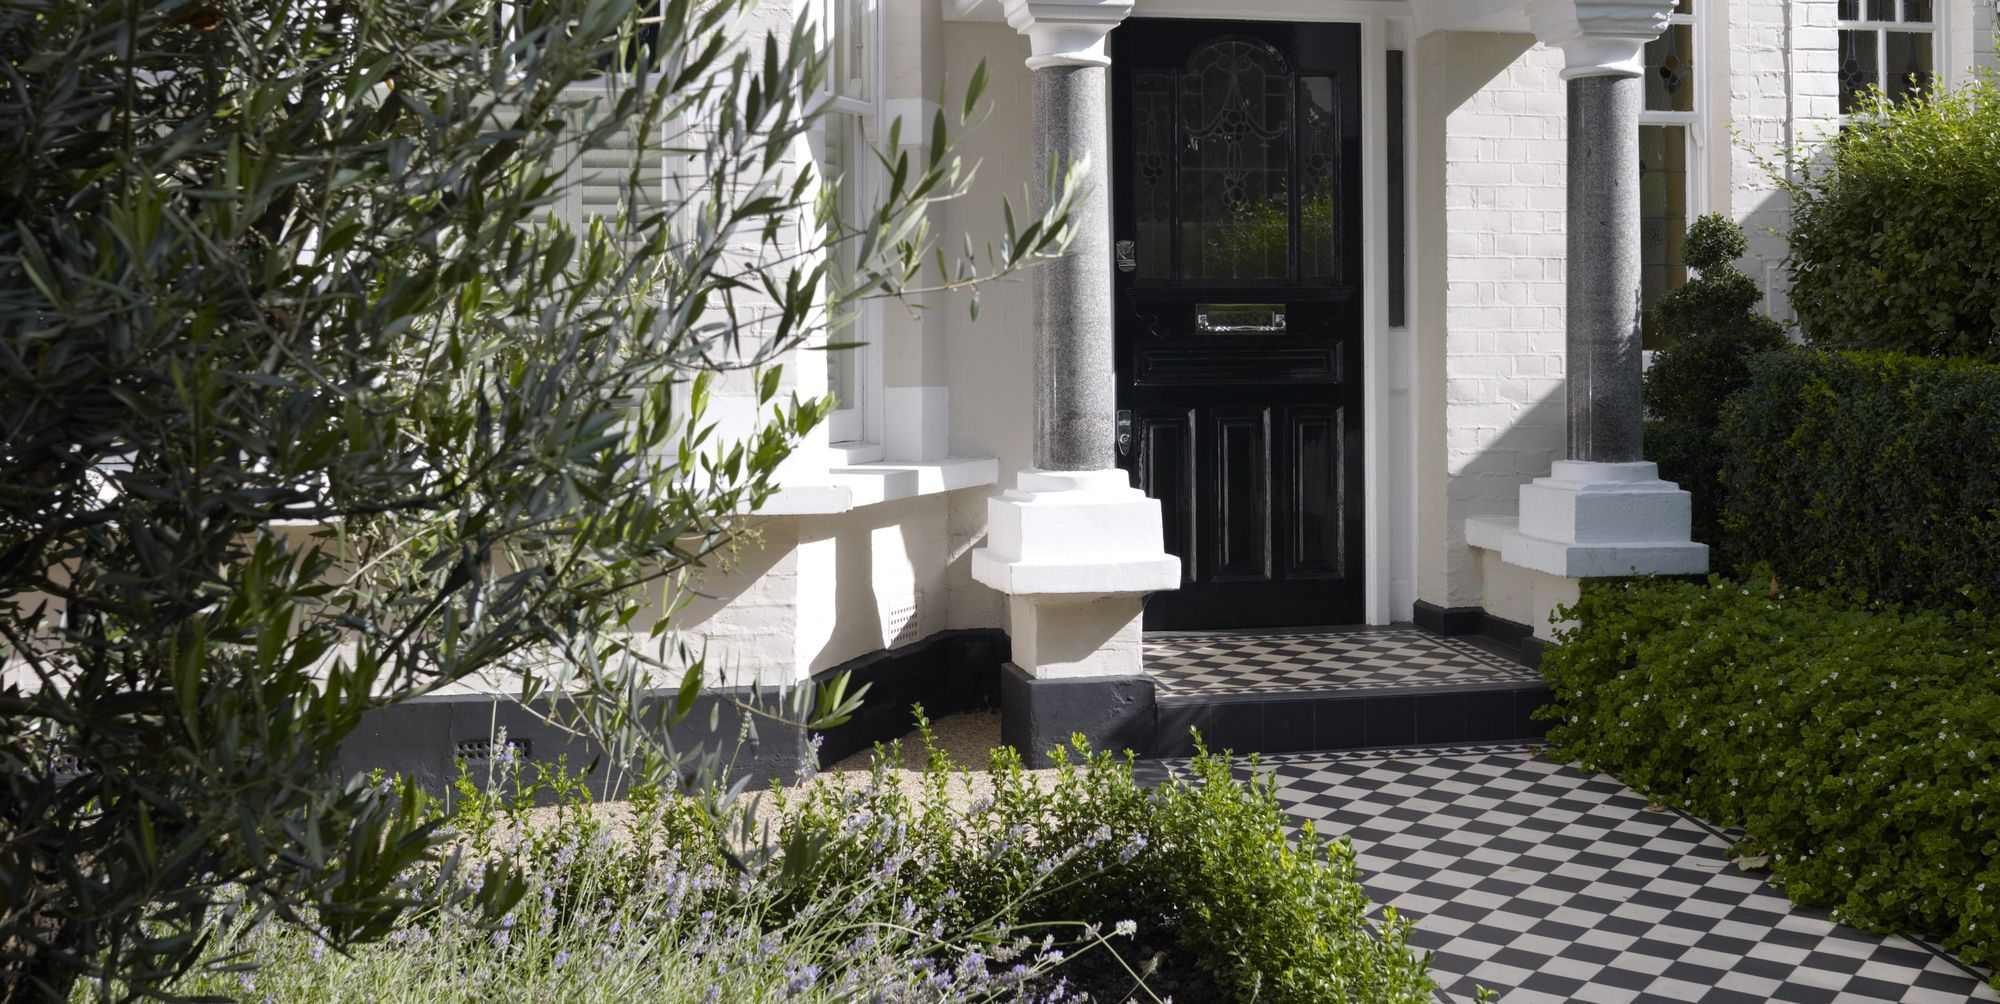 Front garden design ideas to suit terraced, semi-detached and detached houses